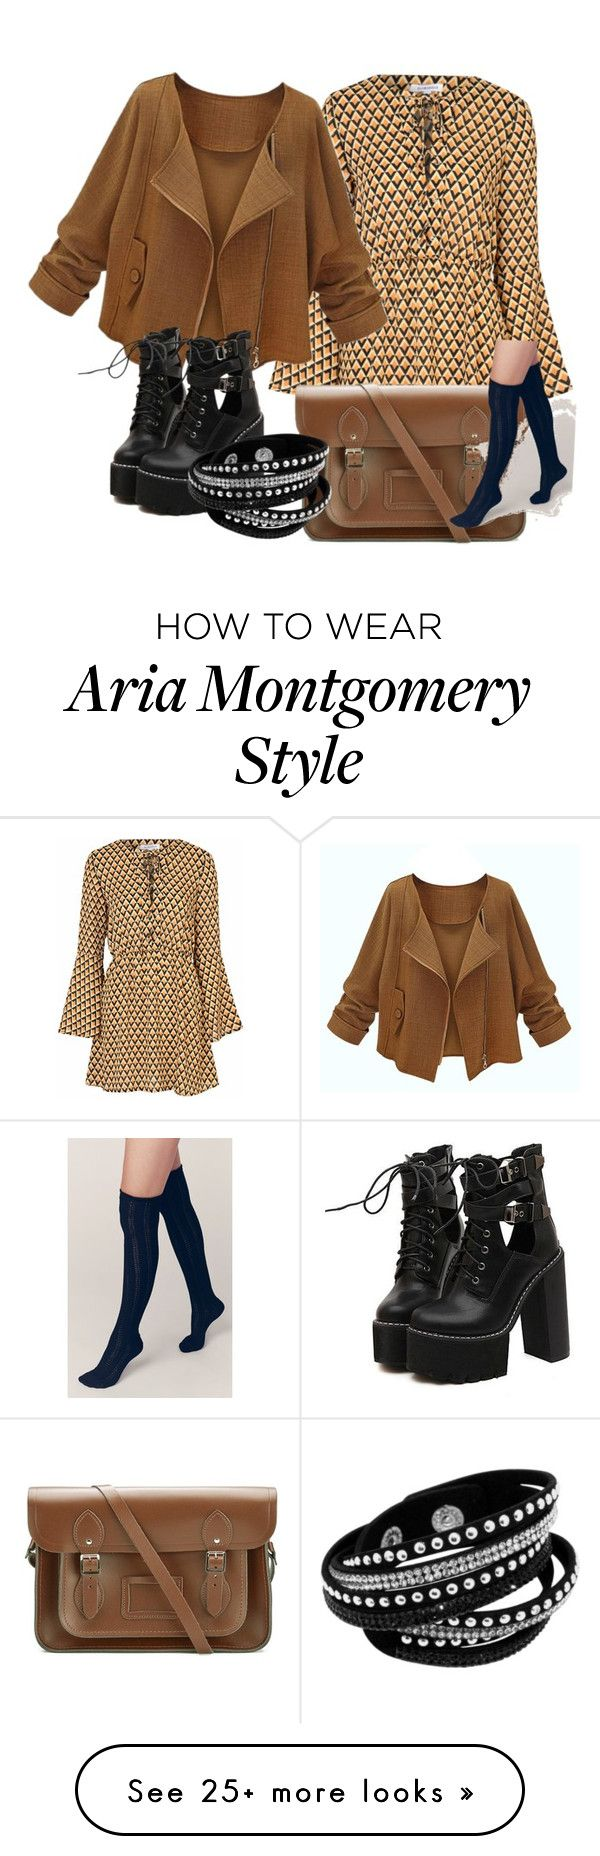 """Aria Montgomery"" by ebbigebi on Polyvore featuring Glamorous, WithChic, The Cambridge Satchel Company and Free People"